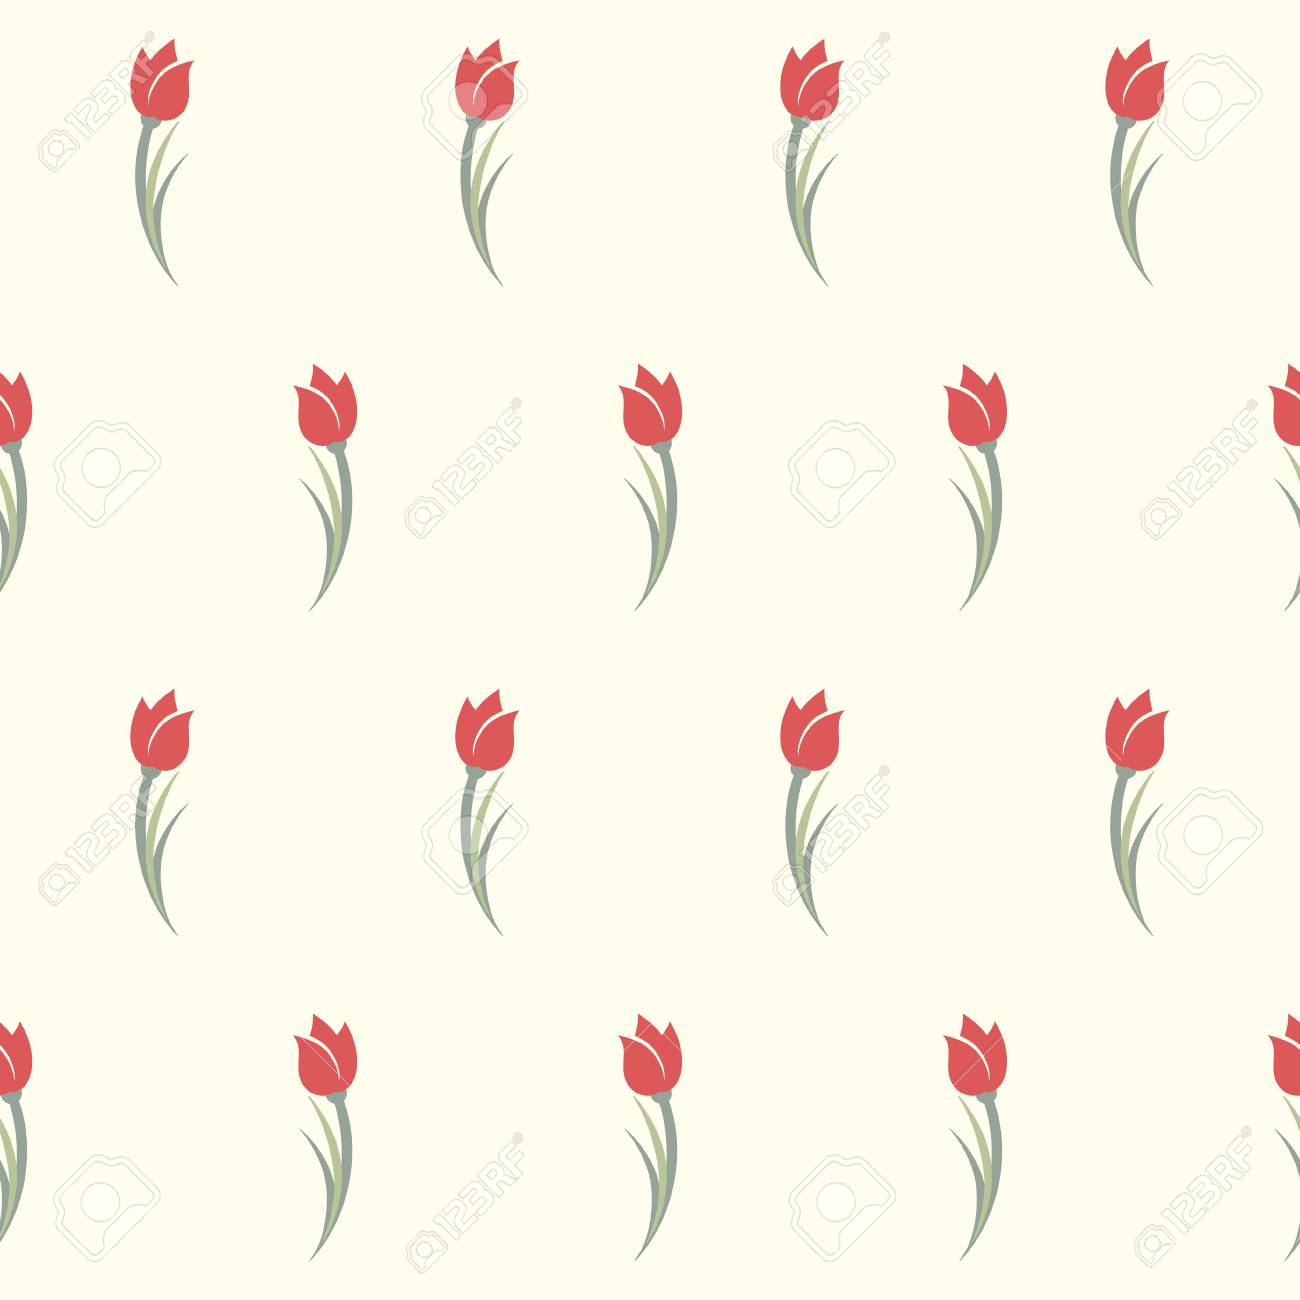 Tulips Seamless Pattern Cute Simple Background With Red Tulips Royalty Free Cliparts Vectors And Stock Illustration Image 92686548